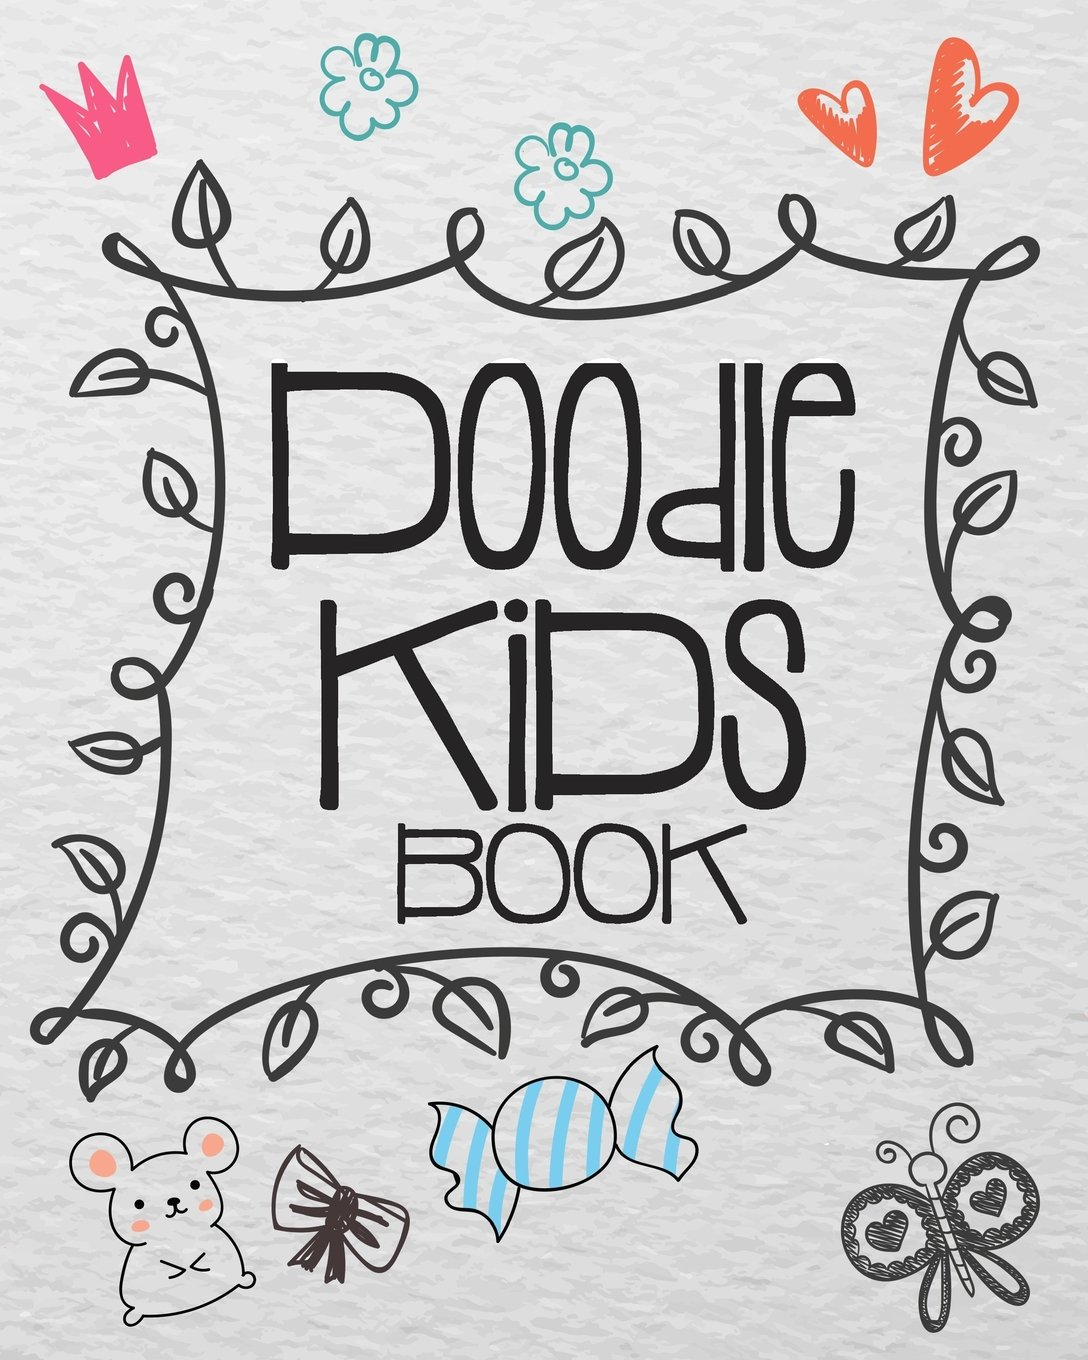 Doodle Kids Book: Blank Journals To Write In, Doodle In, Draw In Or Sketch In, 8